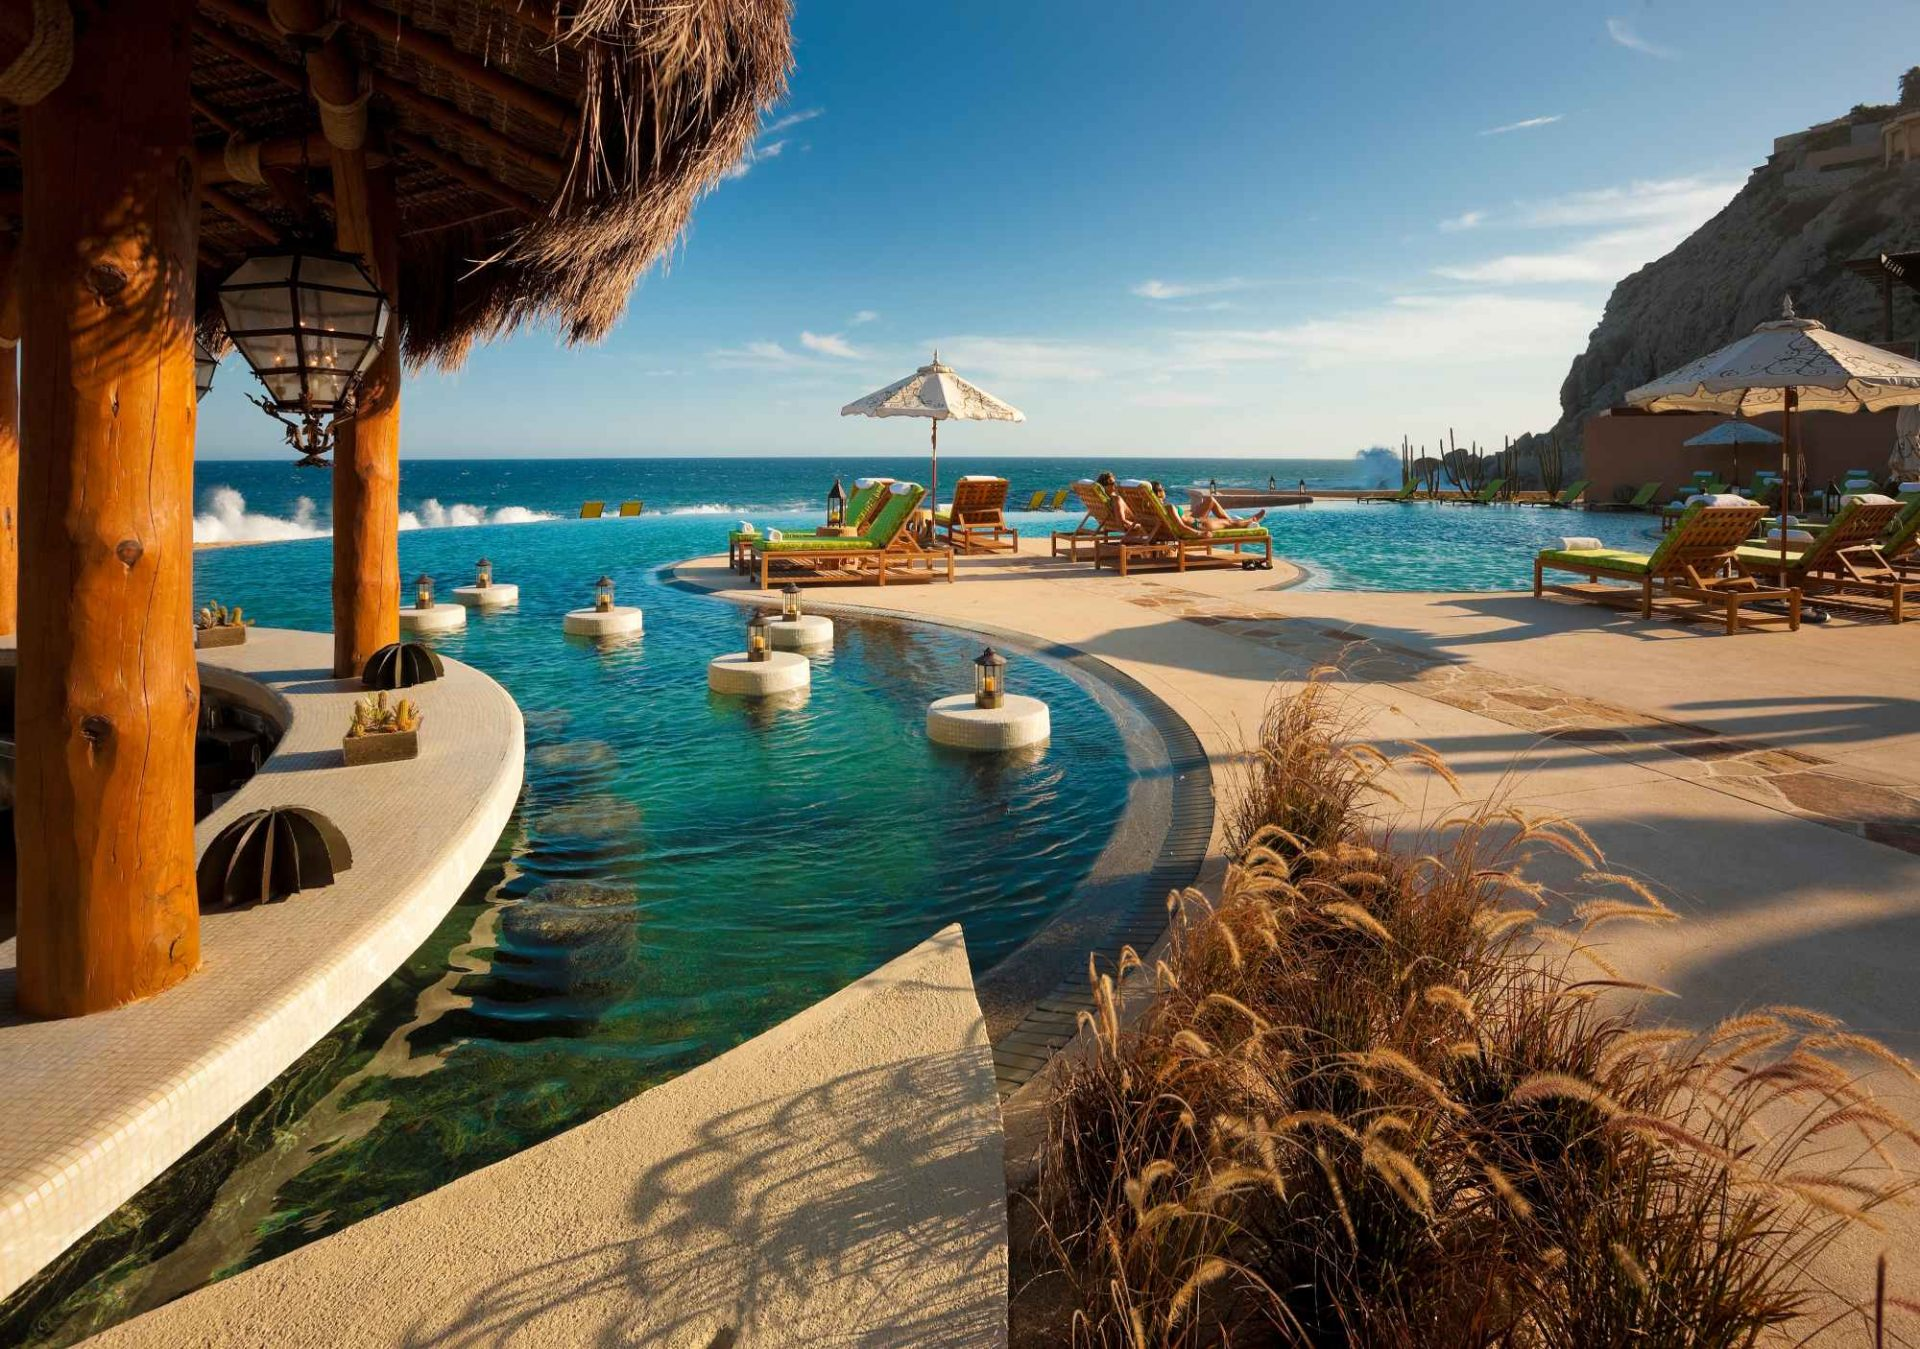 Pool The Resort at Pedregal